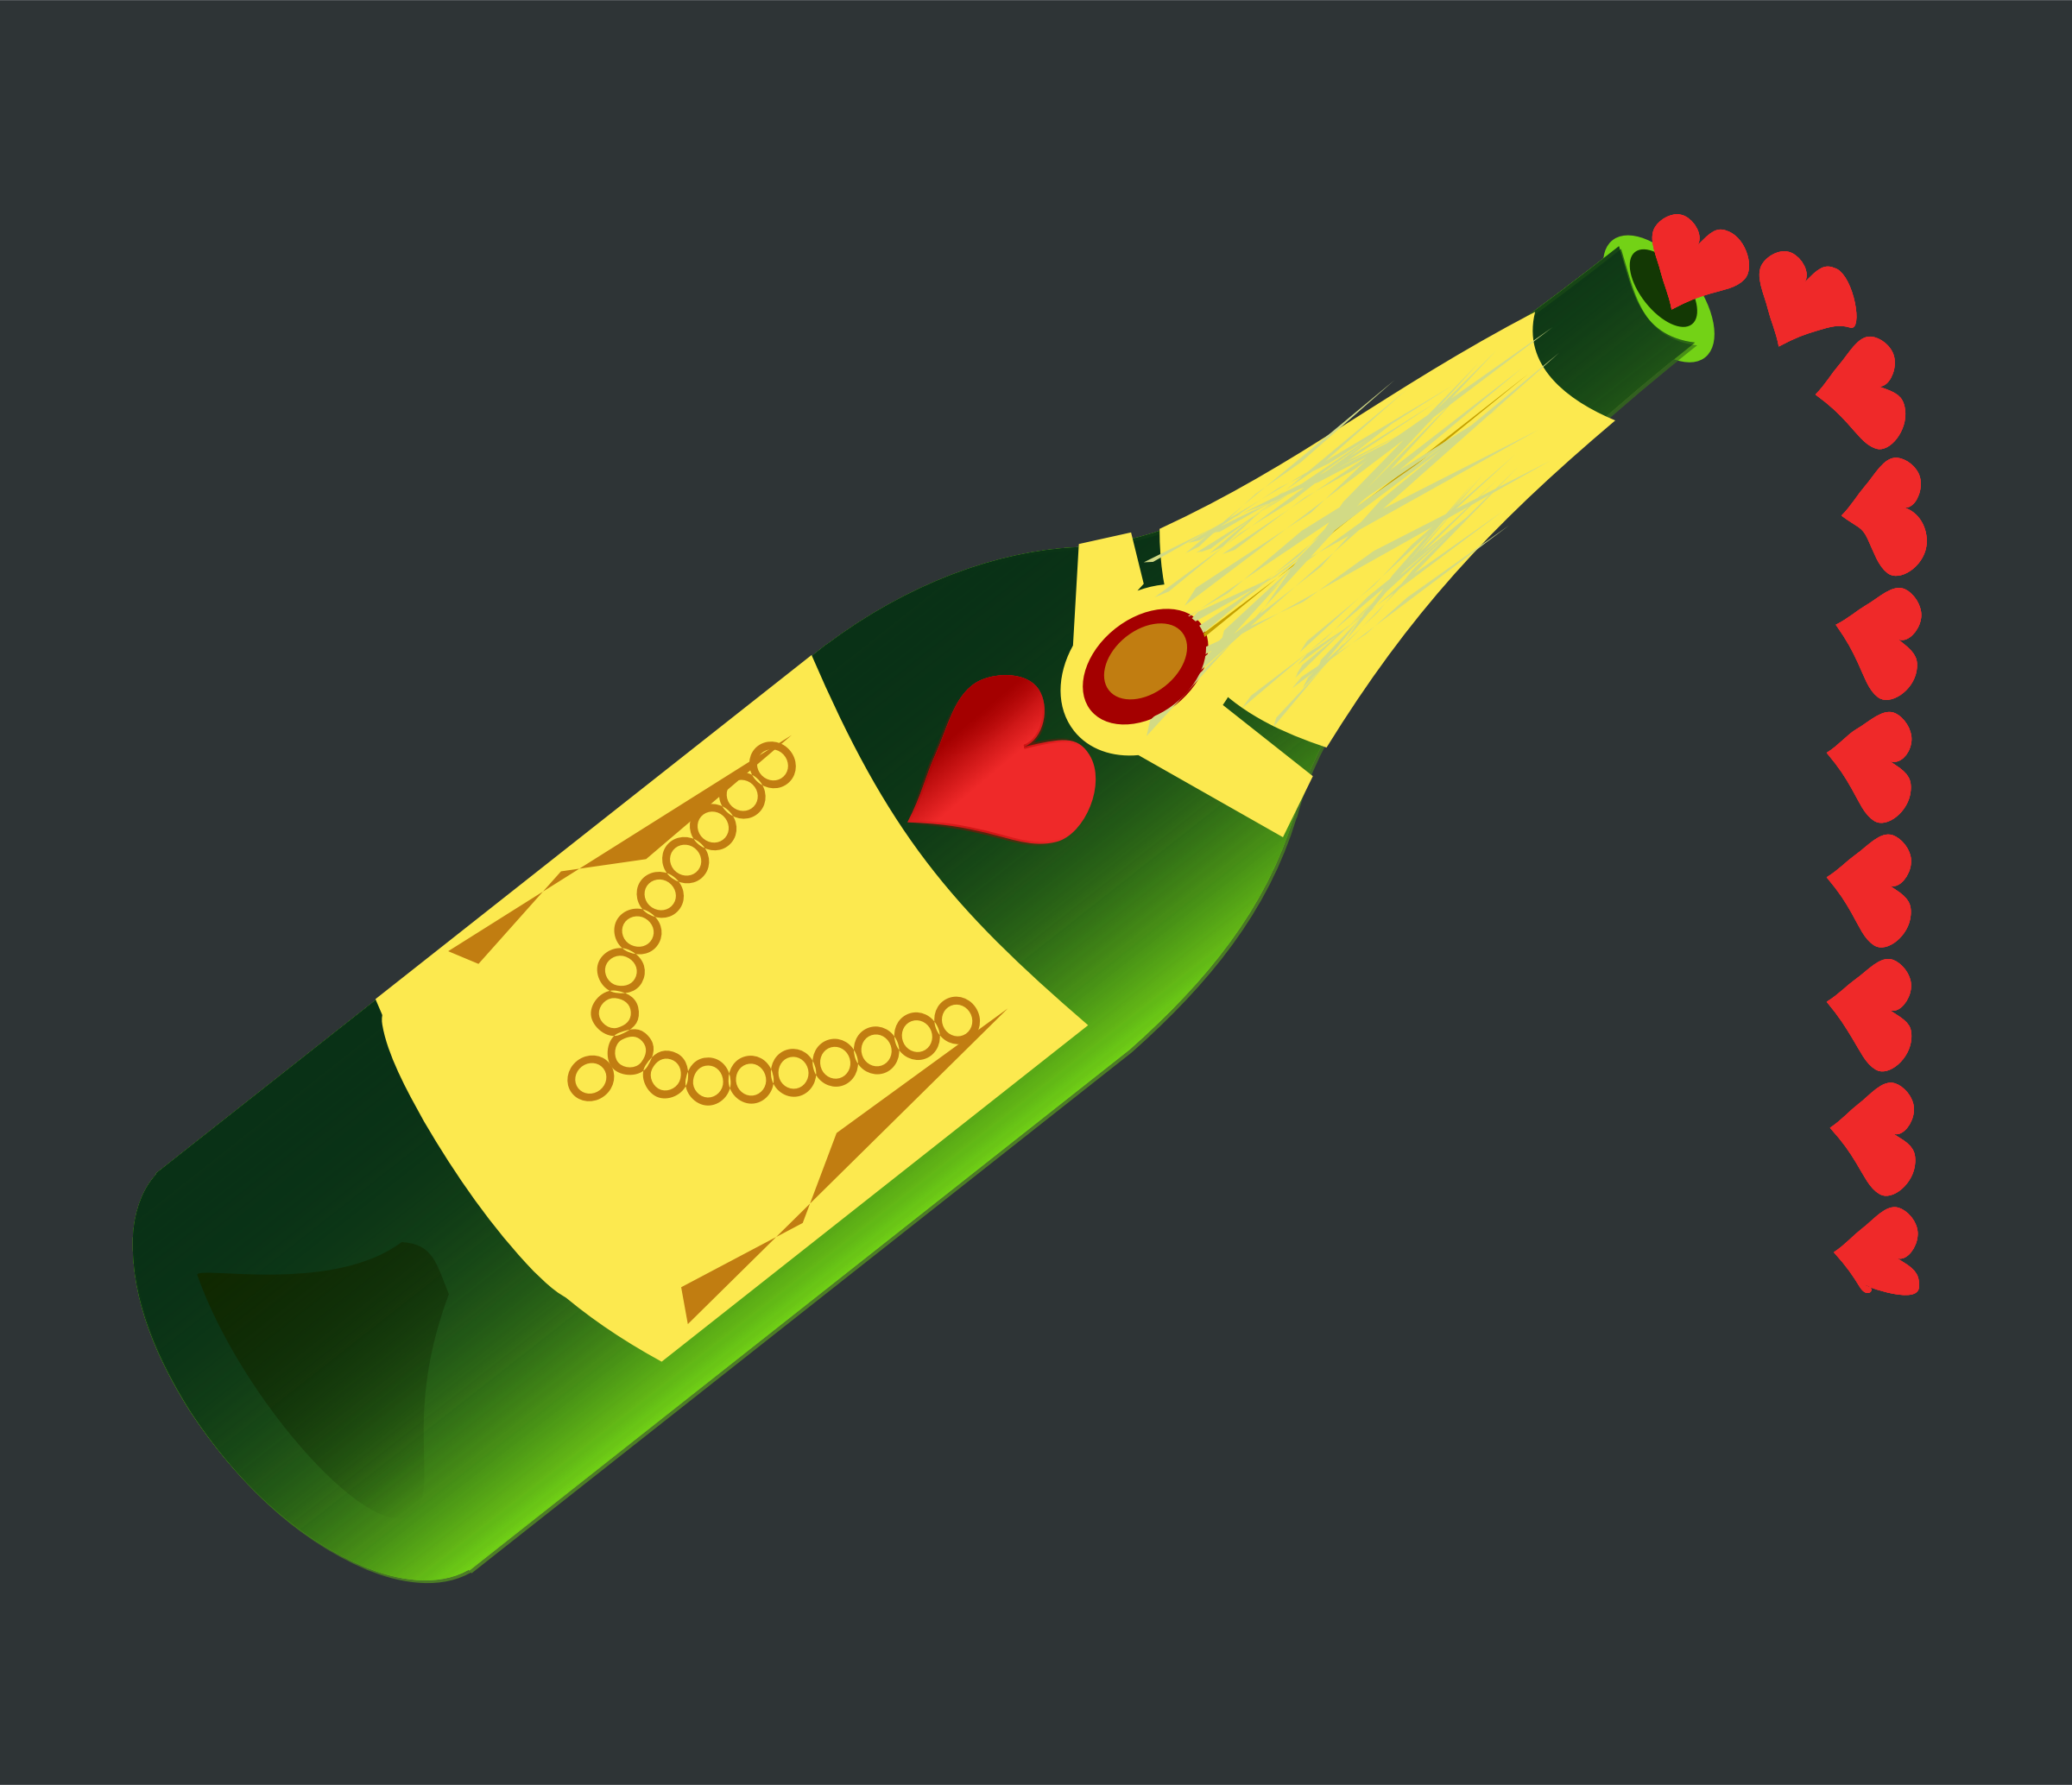 Champagne - for Major events by chatard